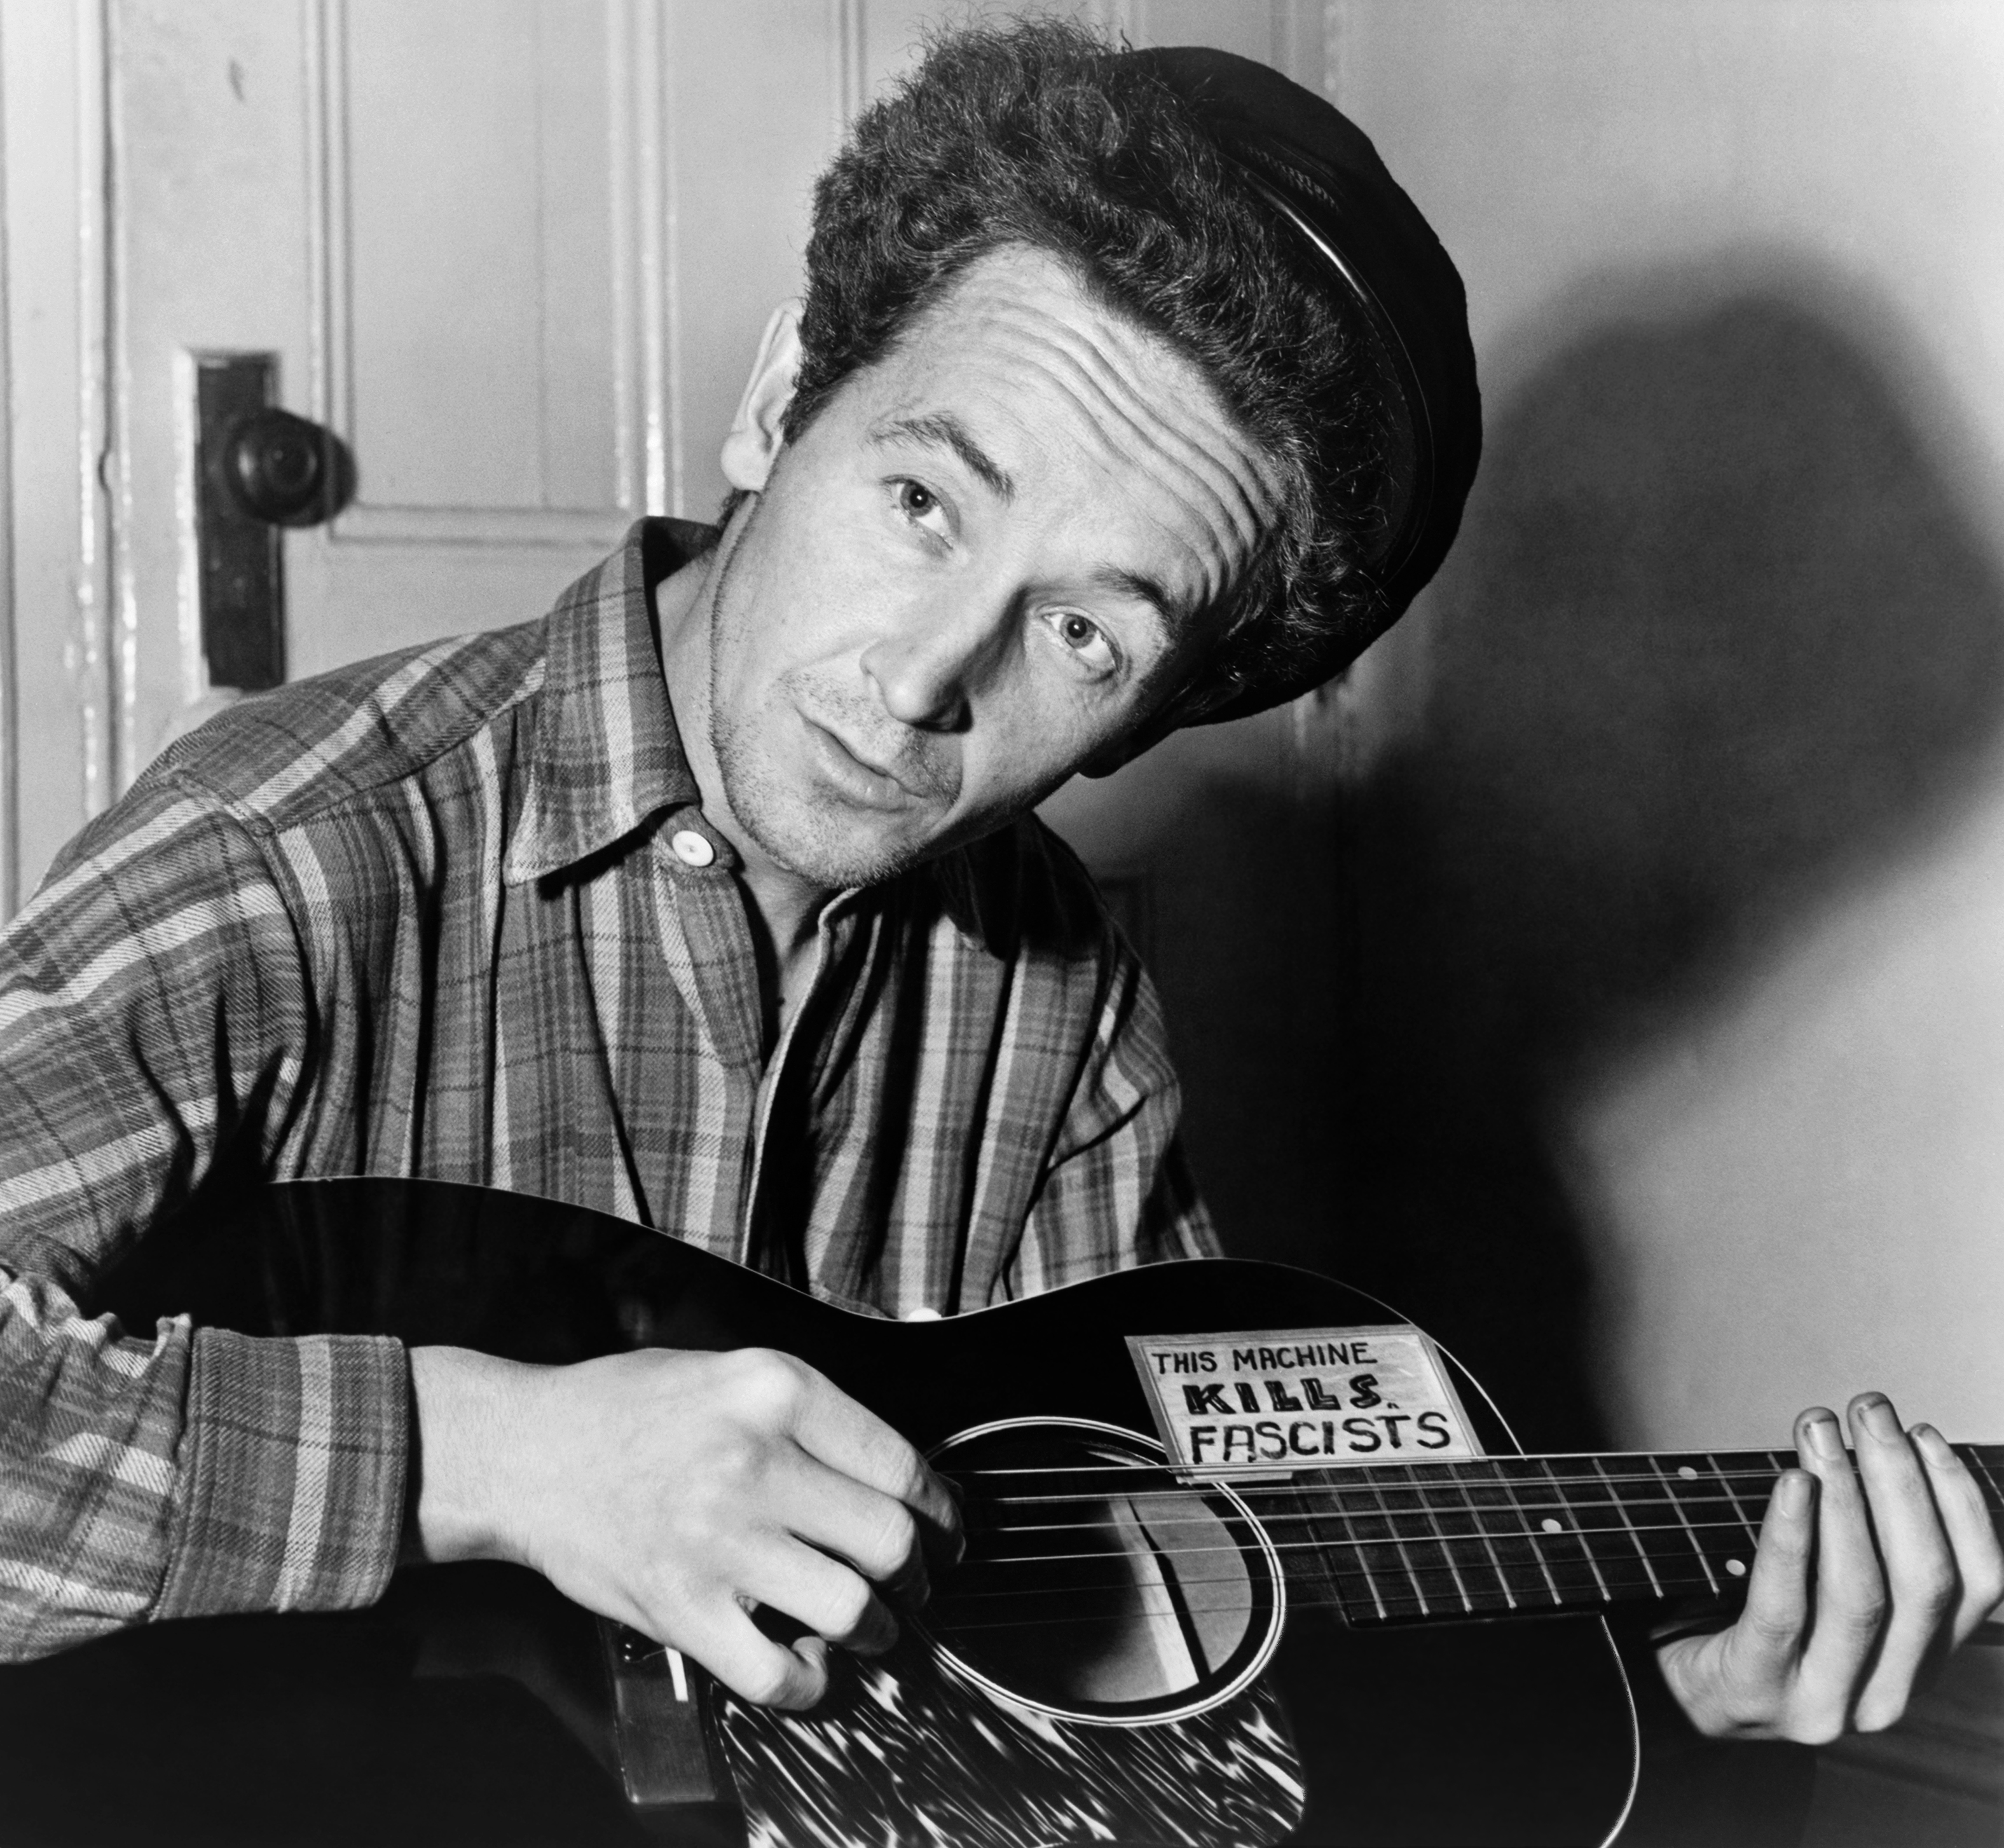 Woody Guthrie, March 1943. Library of Congress Prints and Photographs, cph.3c30859.